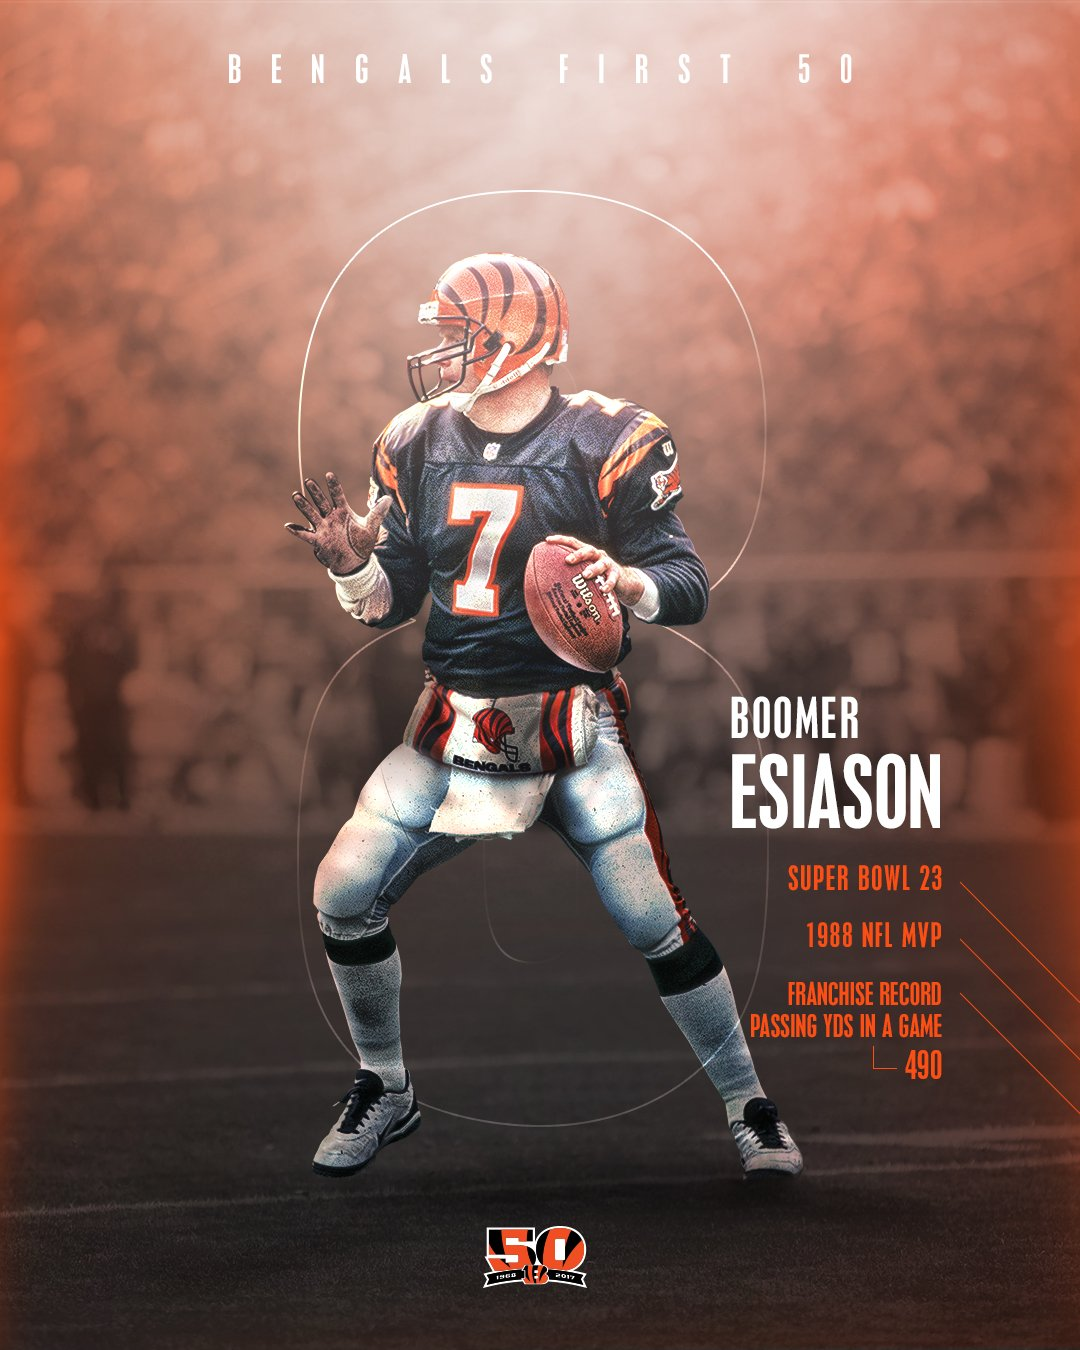 In 8 days, Bengals football returns! #BALvsCIN  Number 8 on the #Bengals First 50: Boomer Esiason  #Bengals50 https://t.co/orYXR1dumC